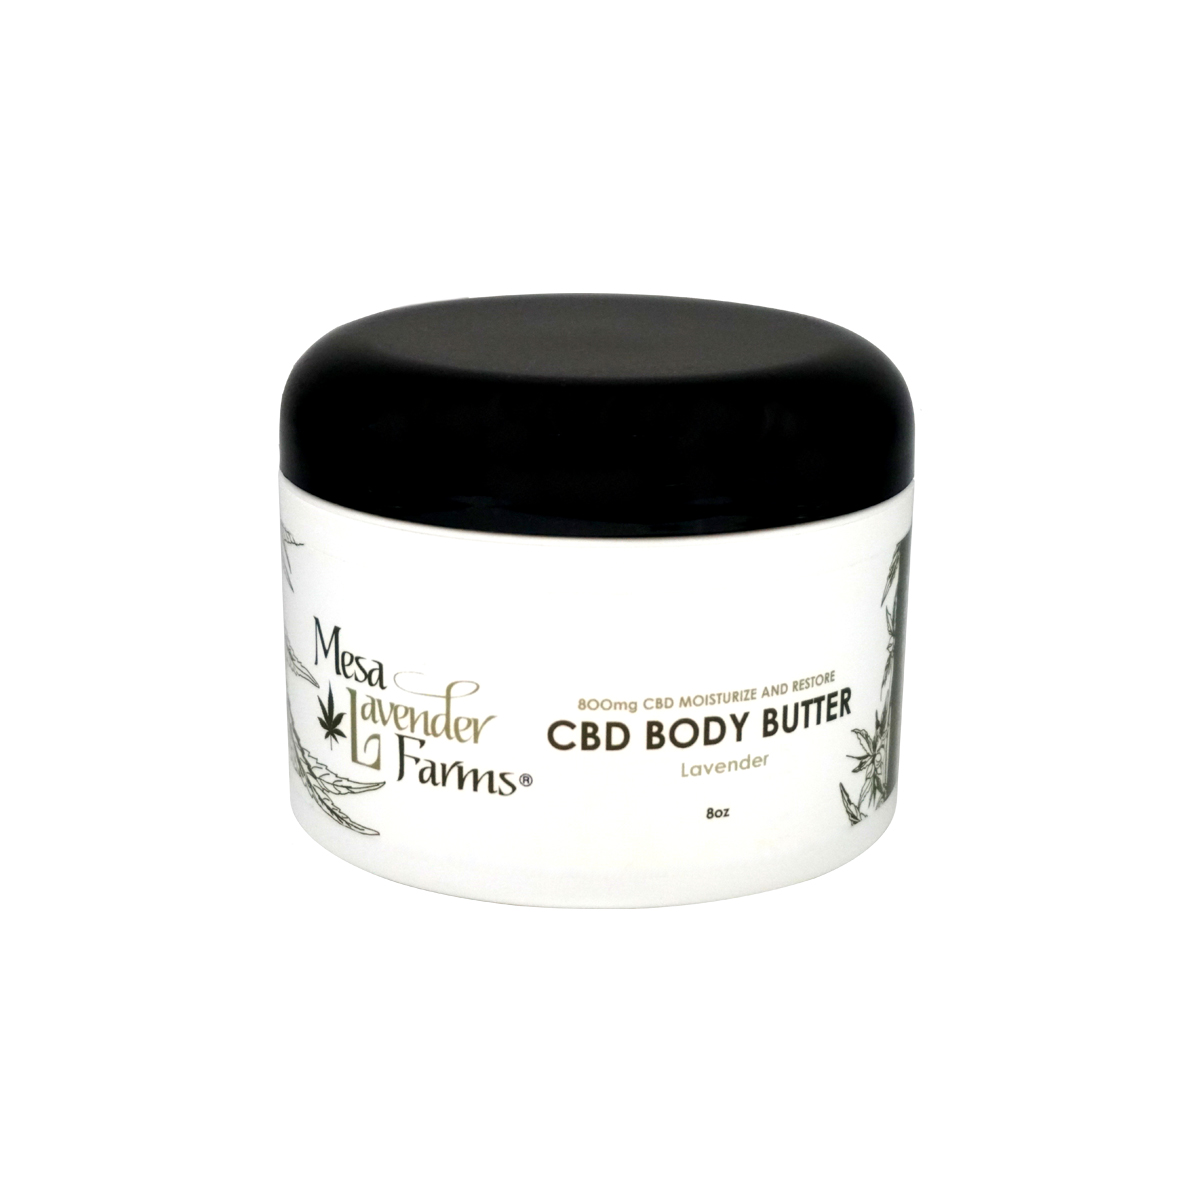 8oz CBD Body Butter Lavender